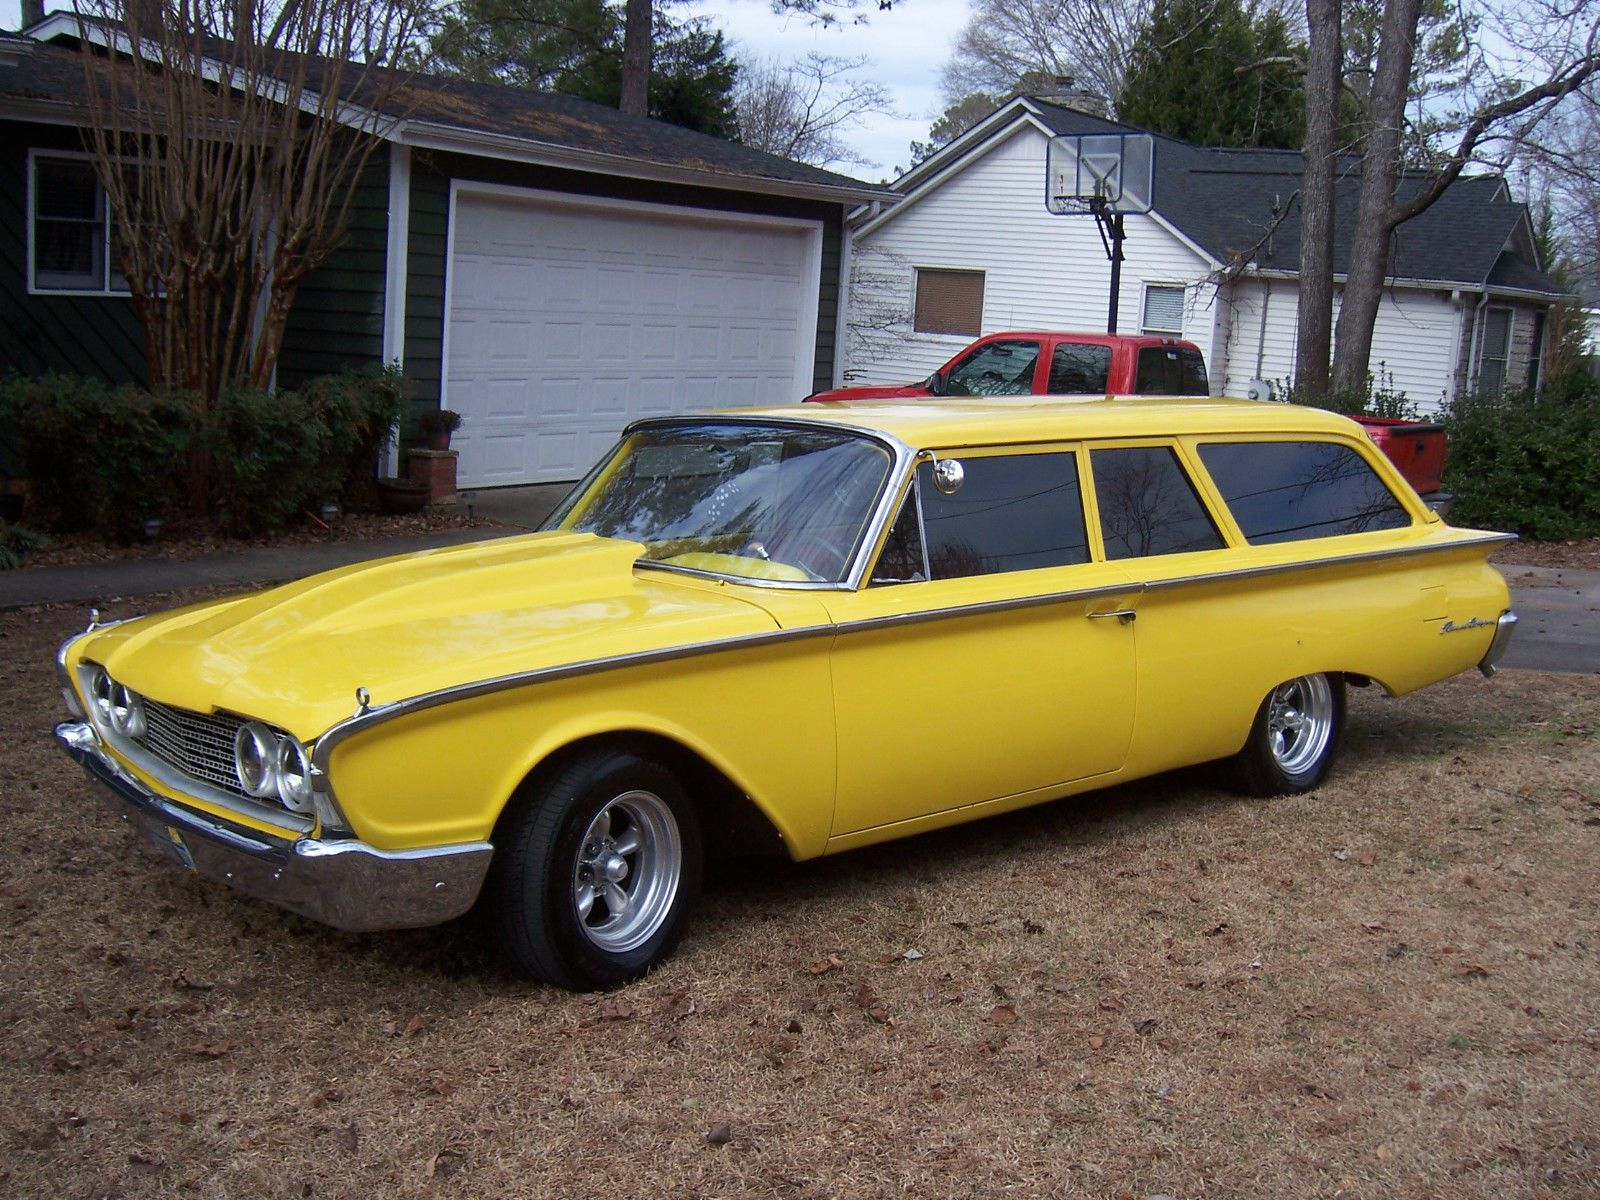 60 Ford Ranch Wagon | eBay | Adrenaline Capsules | Pinterest | Ranch ...